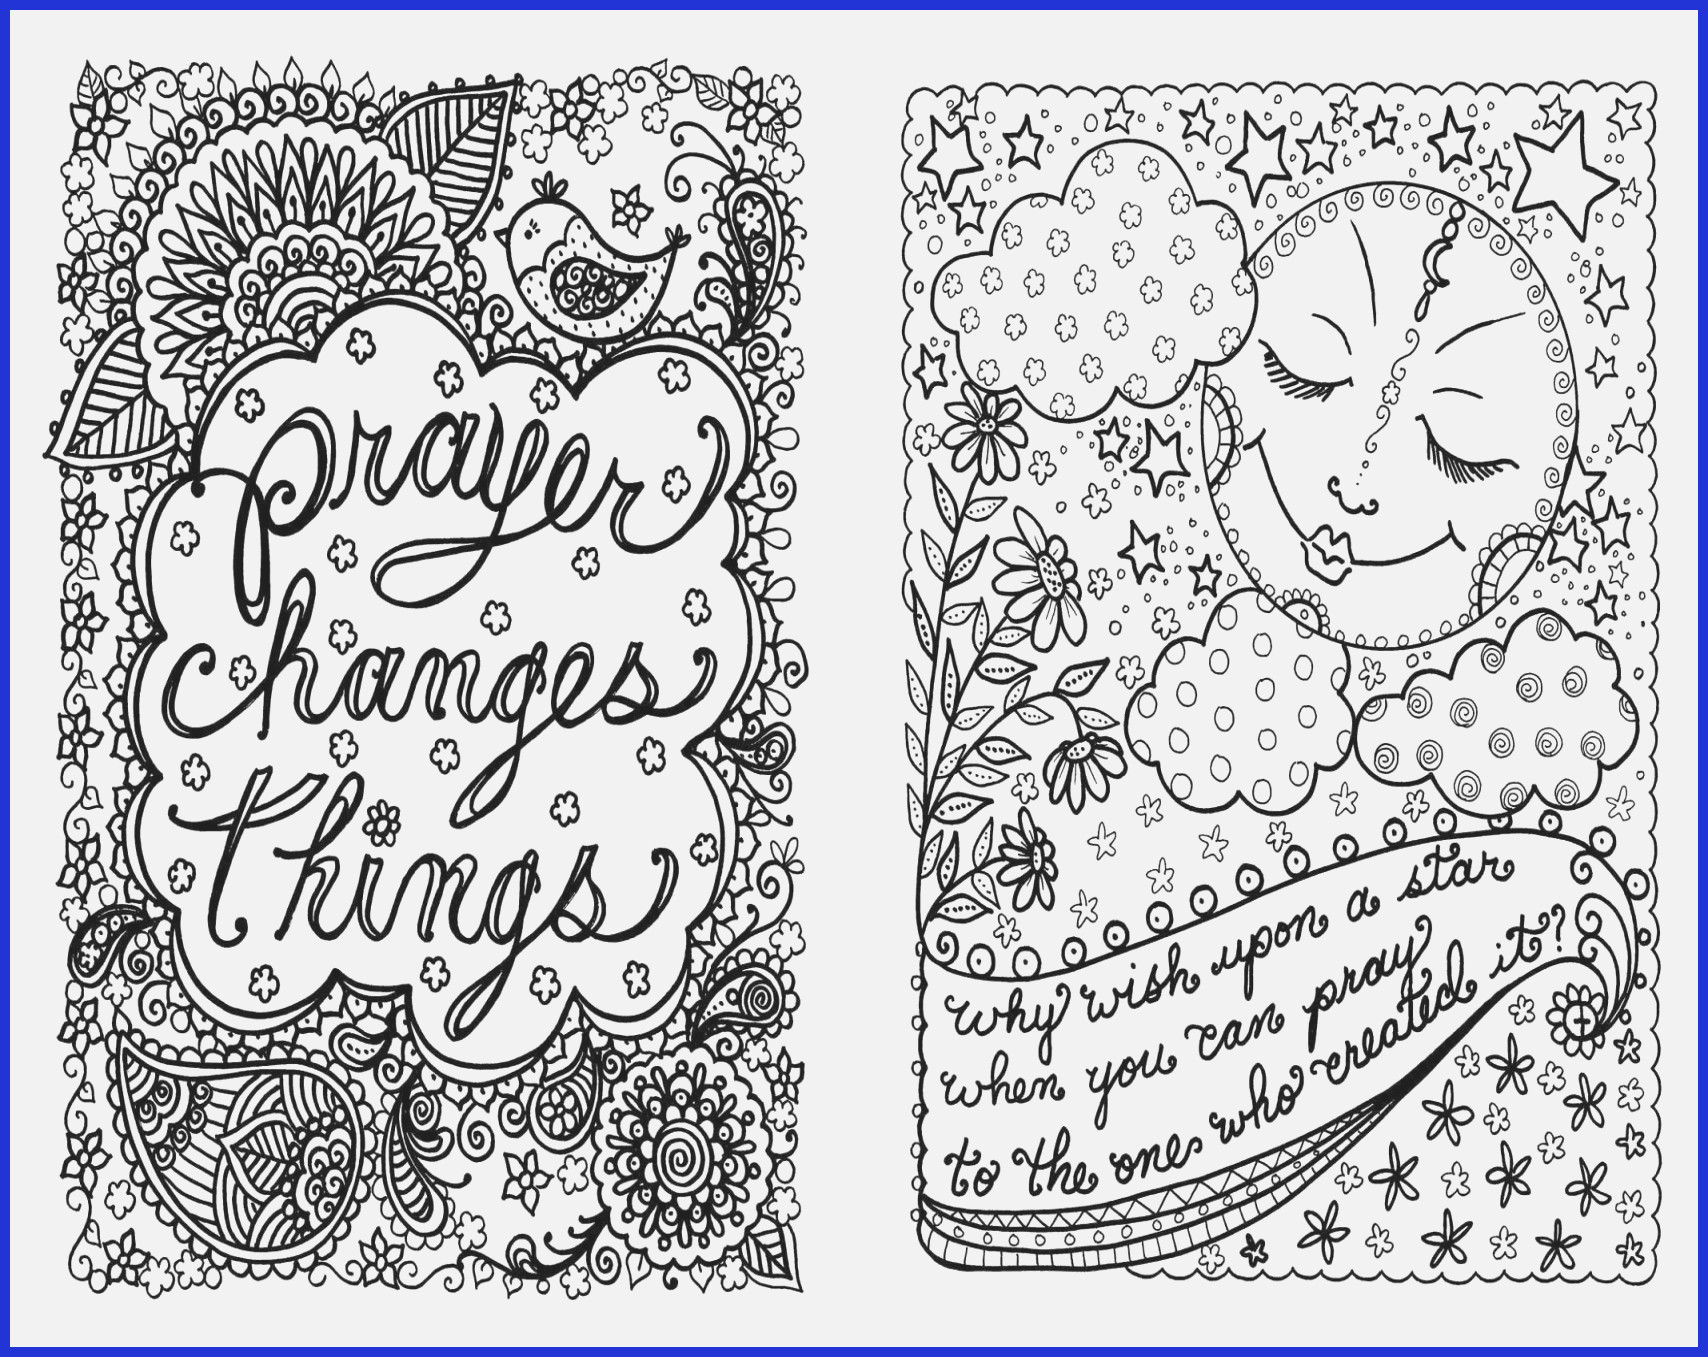 Religious Saying Flower Design Coloring Adults